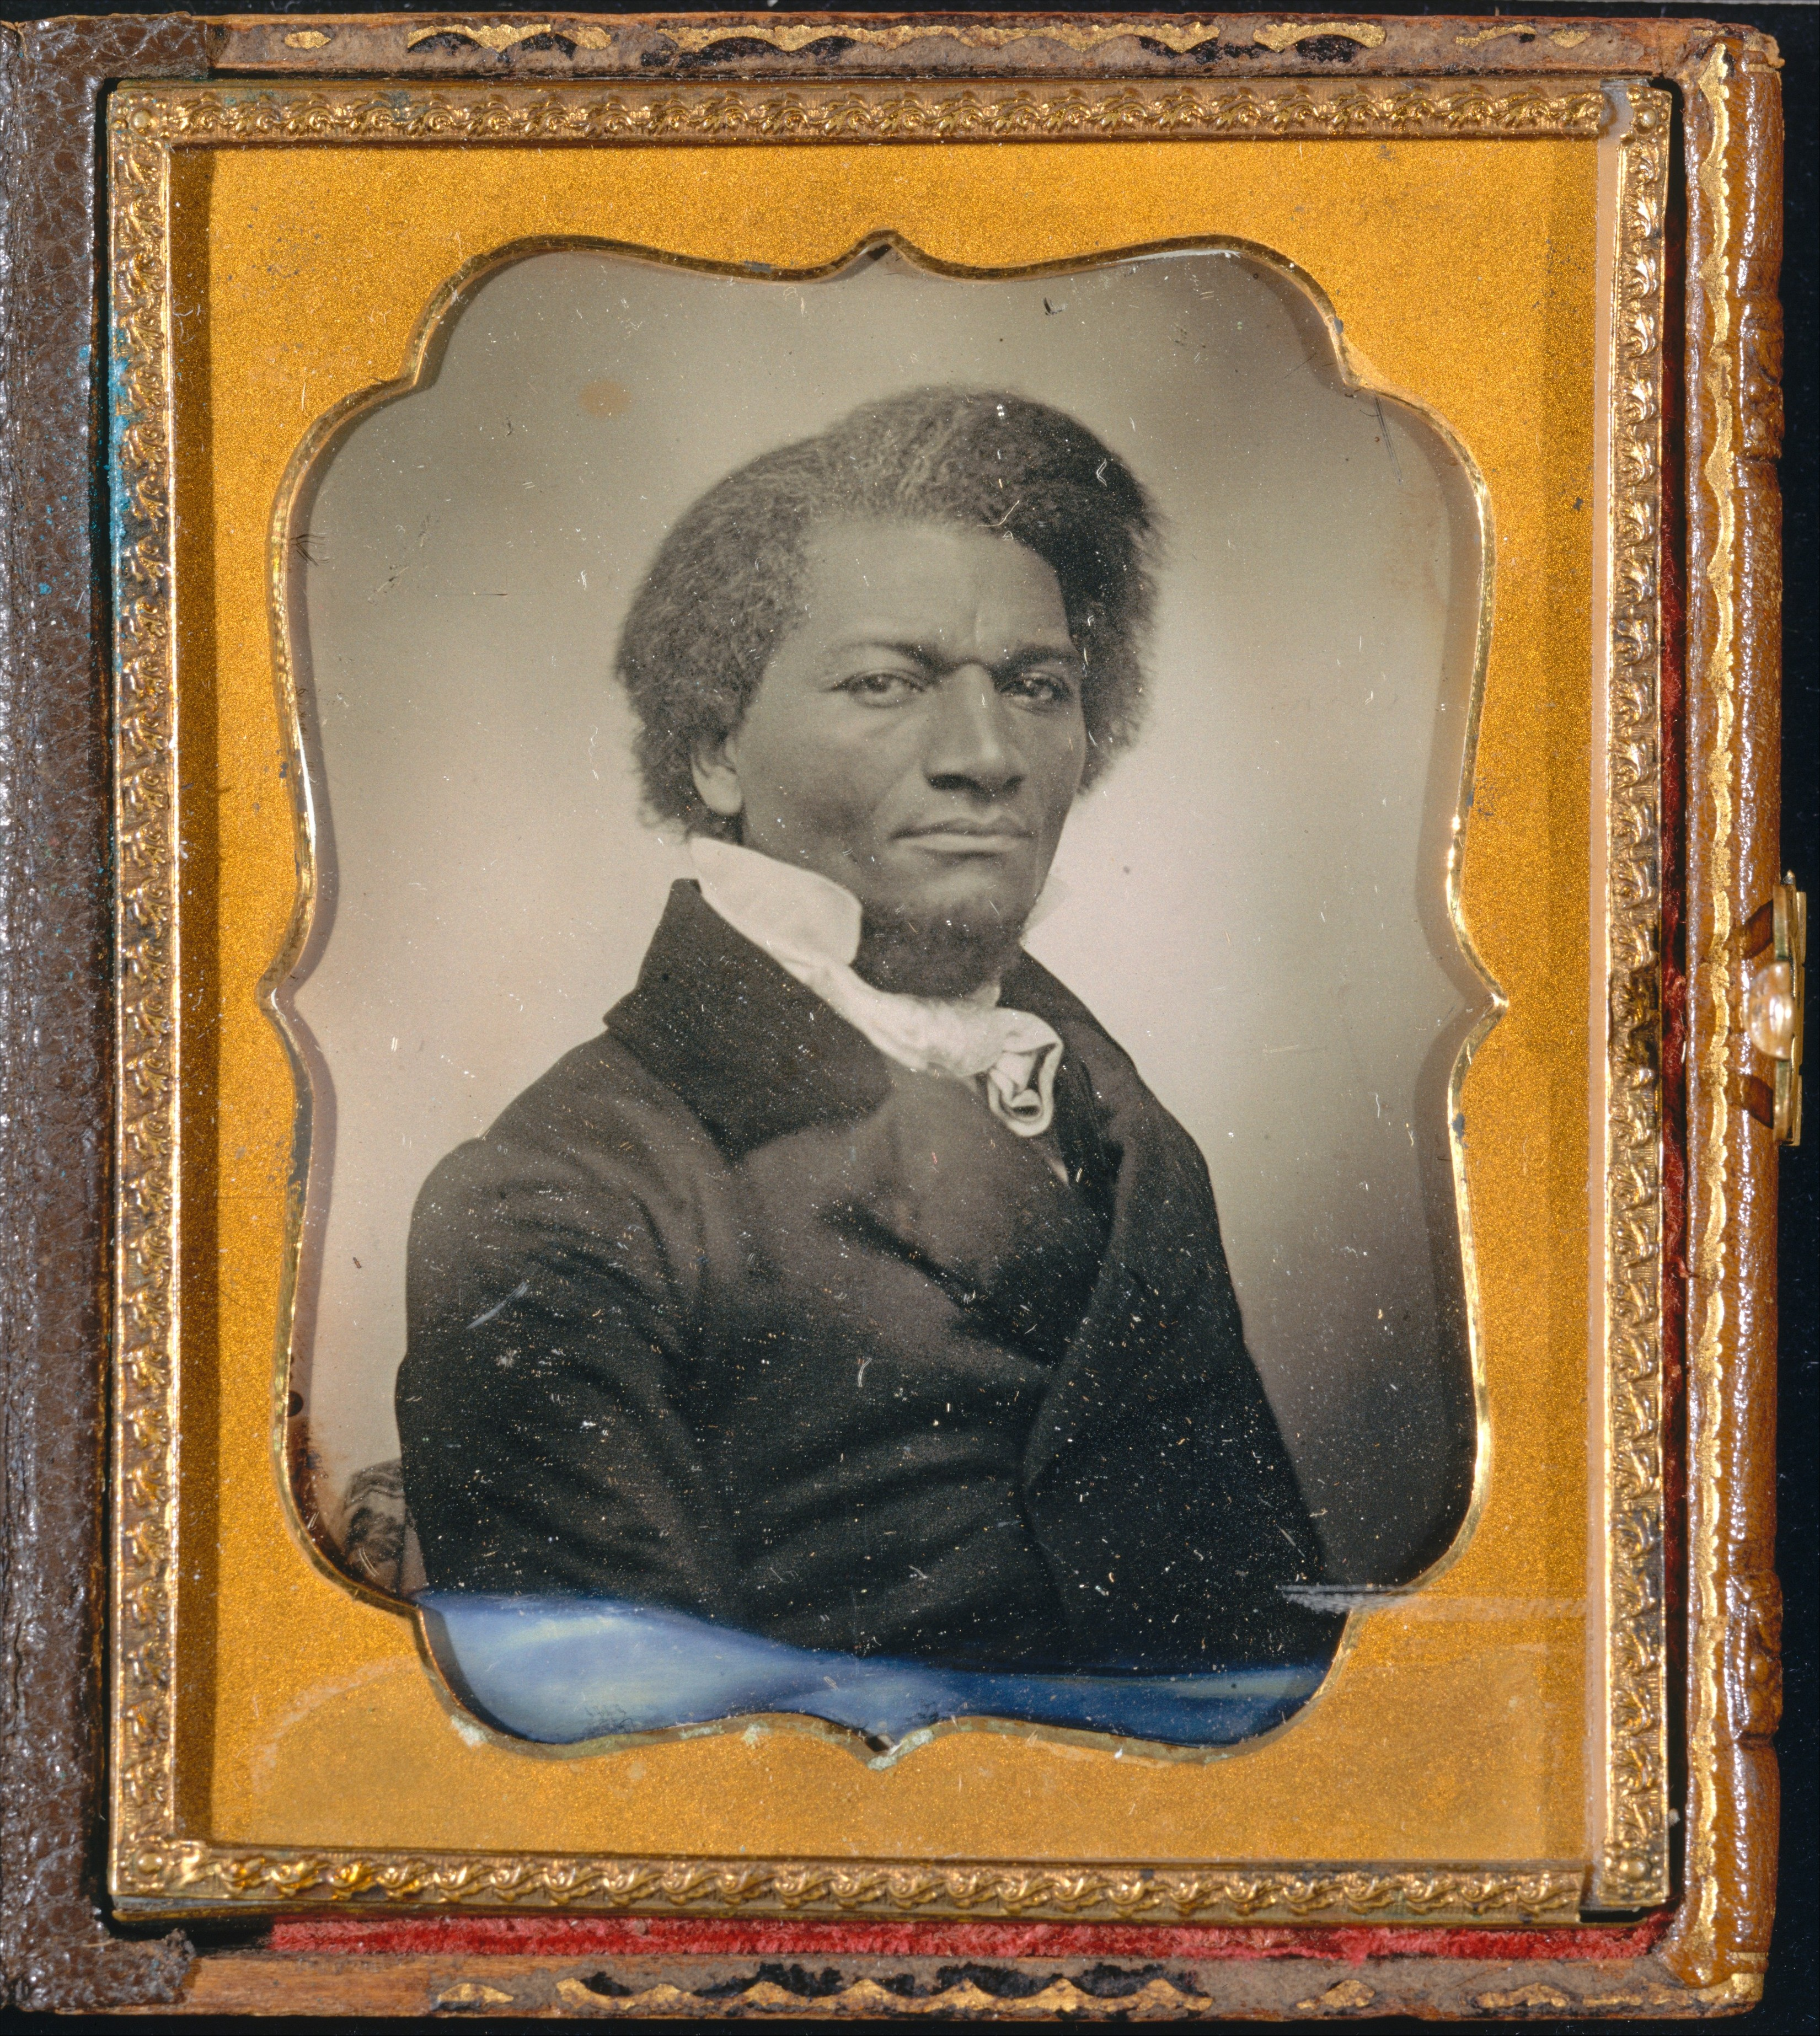 Black and white photograph of Frederick Douglass in a gold frame